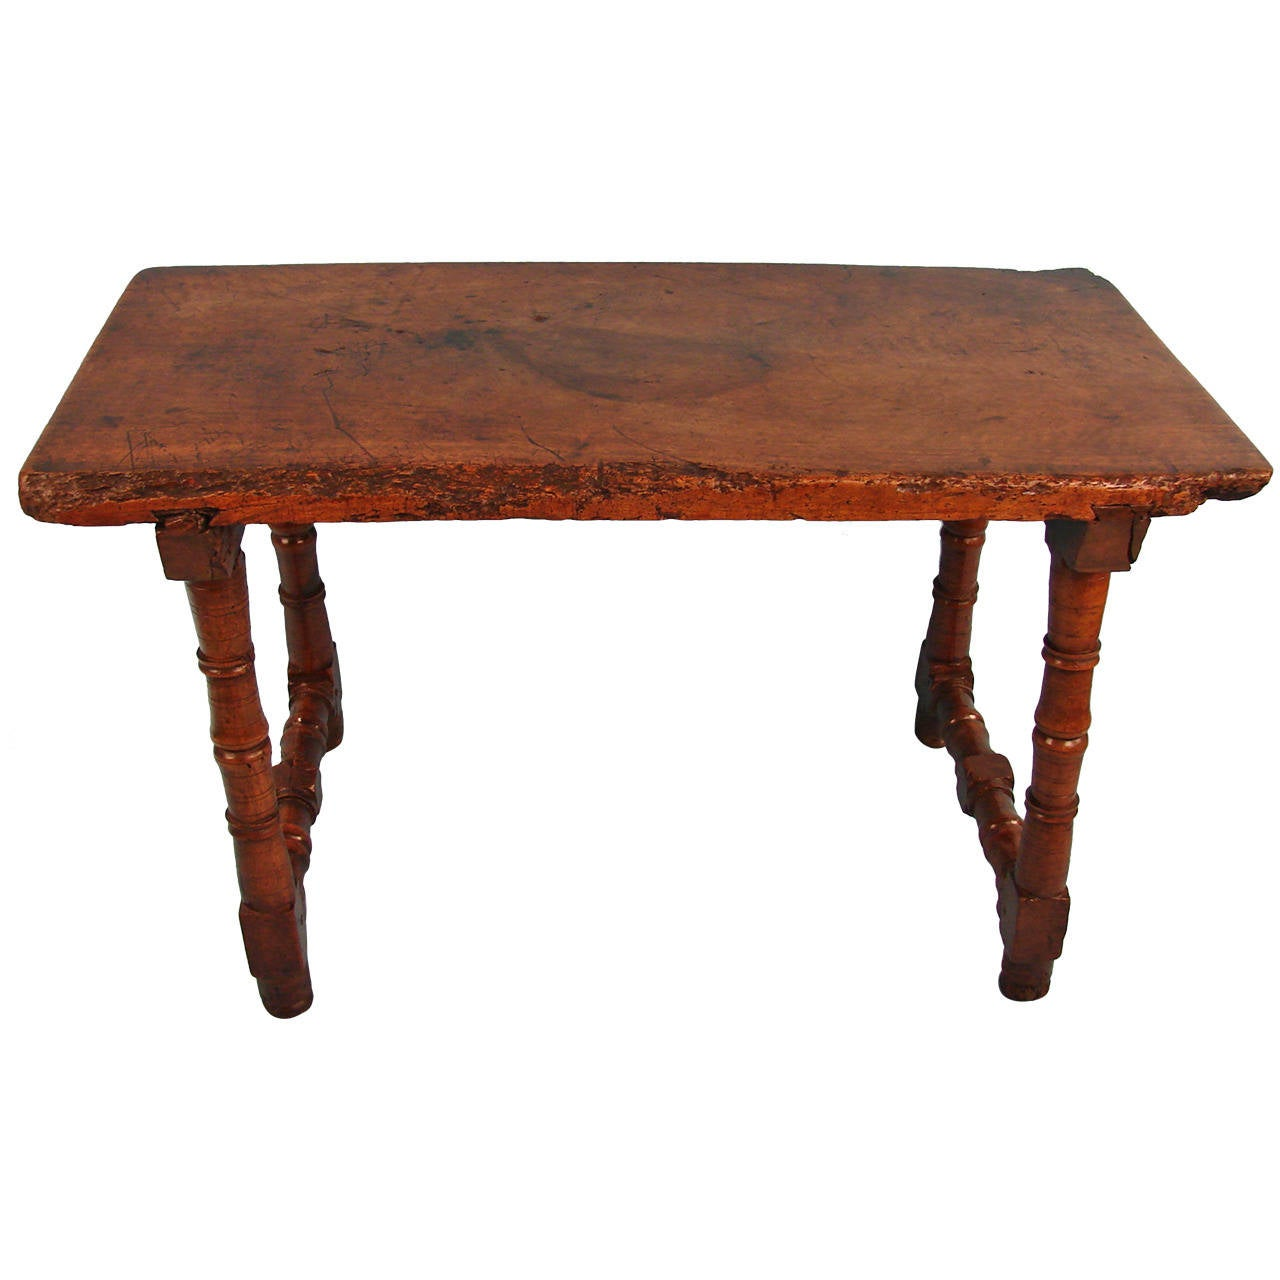 Spanish baroque walnut table at 1stdibs for Table in spanish